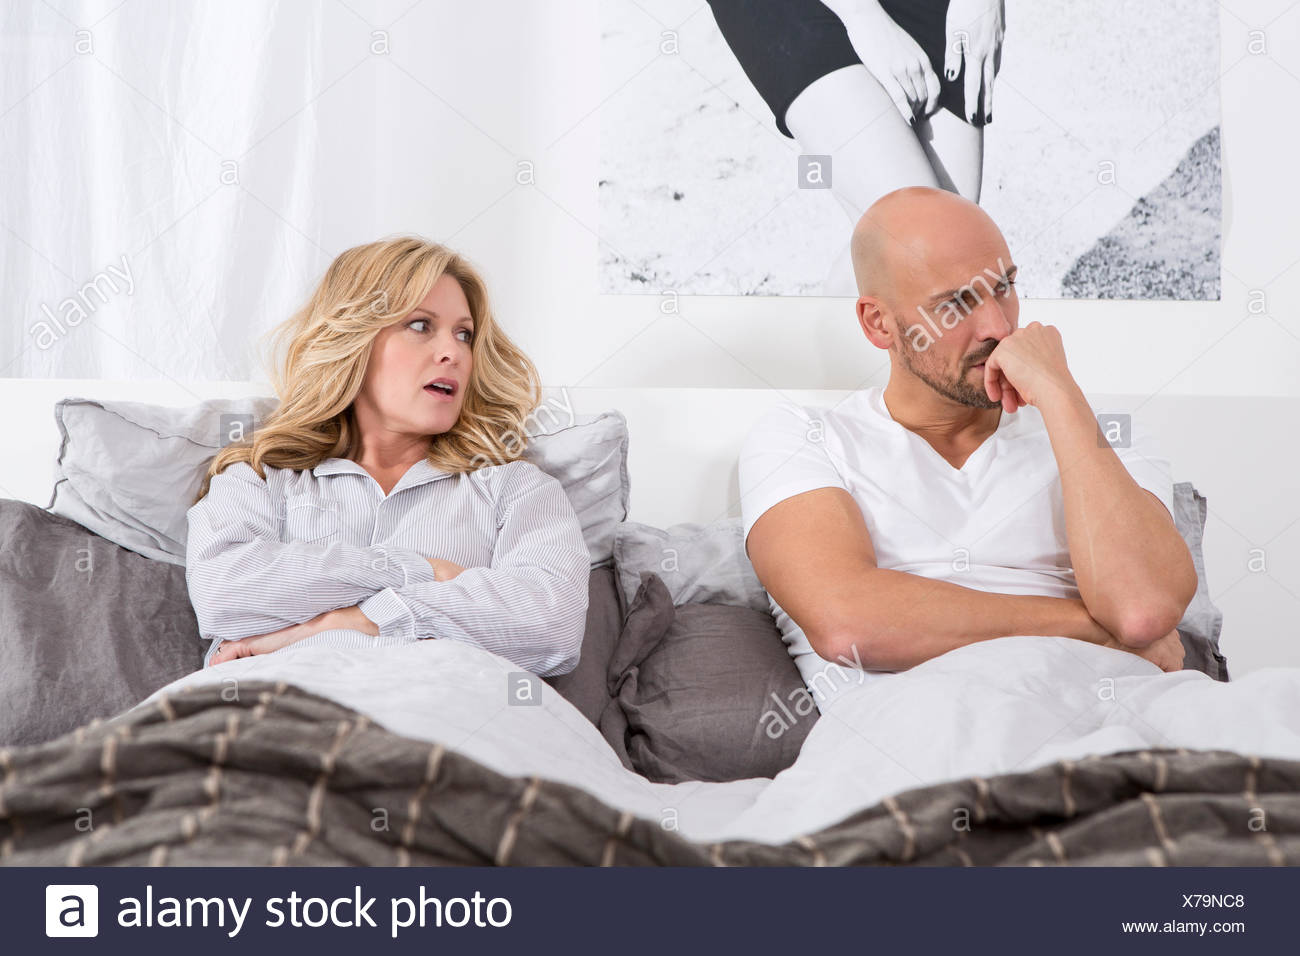 Mature couple lying in bed having relationship problems - Stock Image